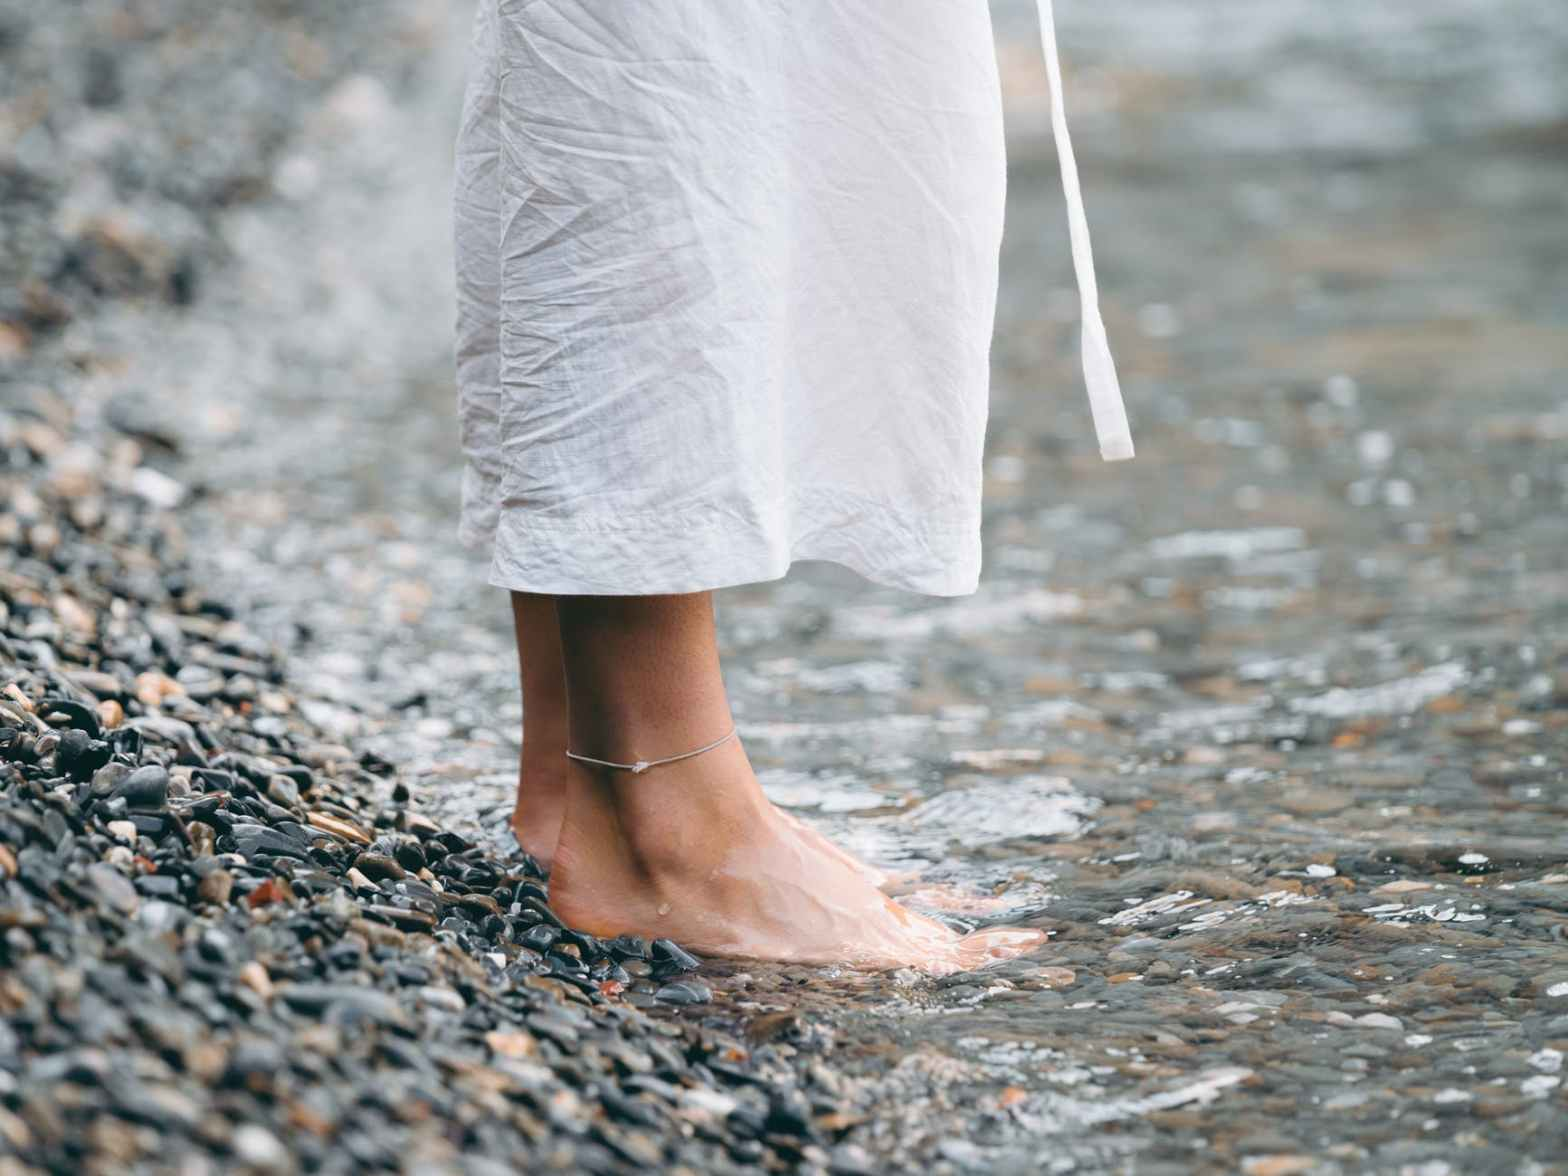 affirmation: I stand firm in my love! A woman's feet standing firmly in the water's edge